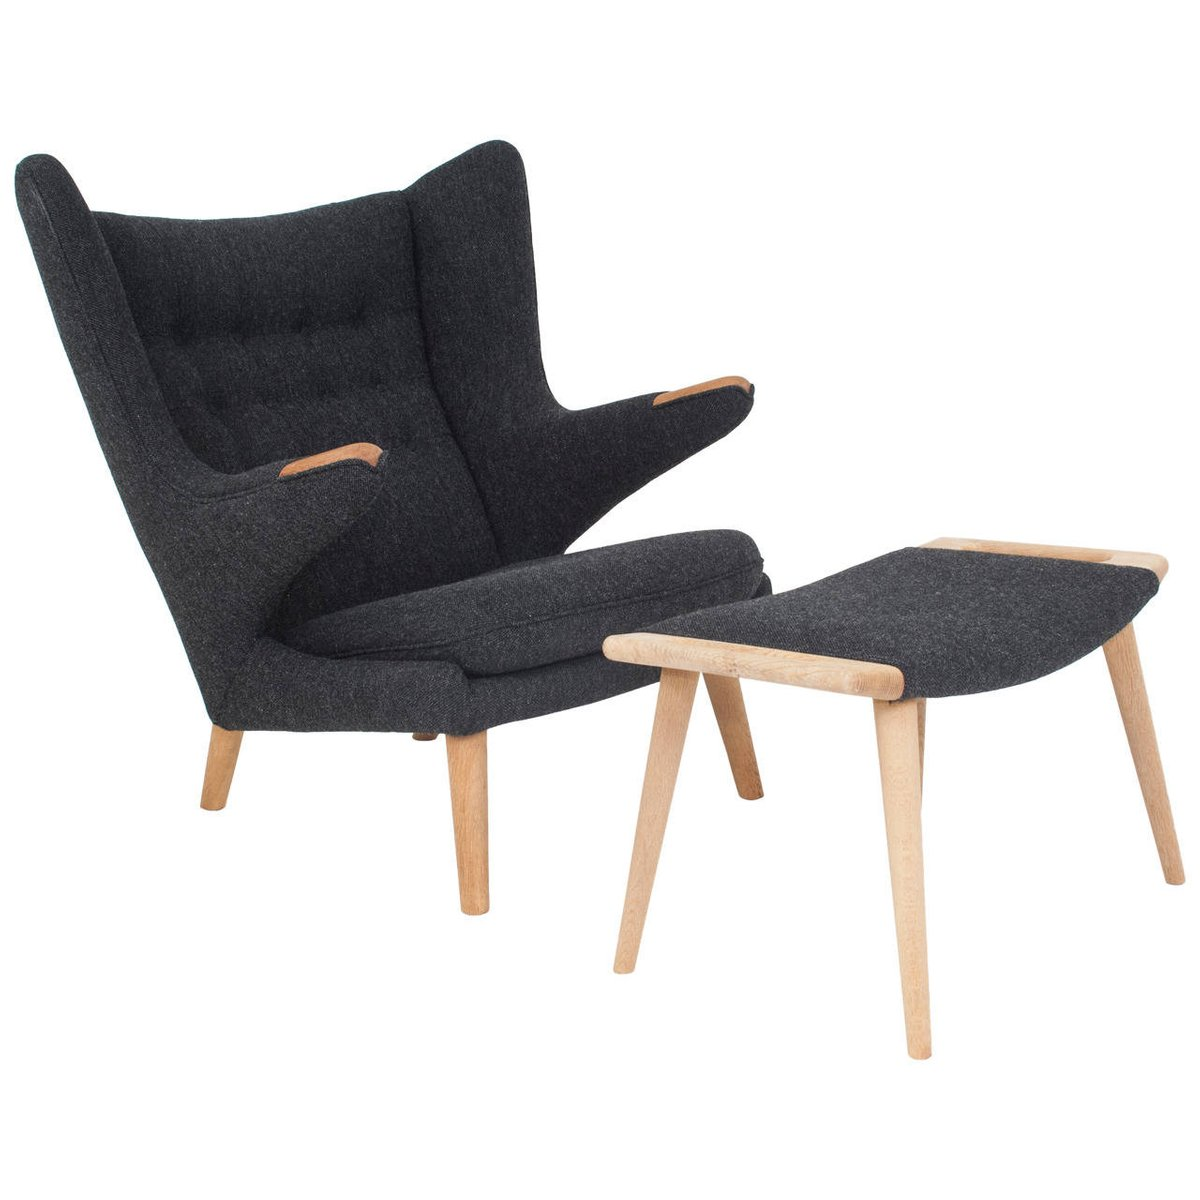 danish papa bear chair and ottoman by hans j wegner for ap stolen 1951 for sale at pamono. Black Bedroom Furniture Sets. Home Design Ideas